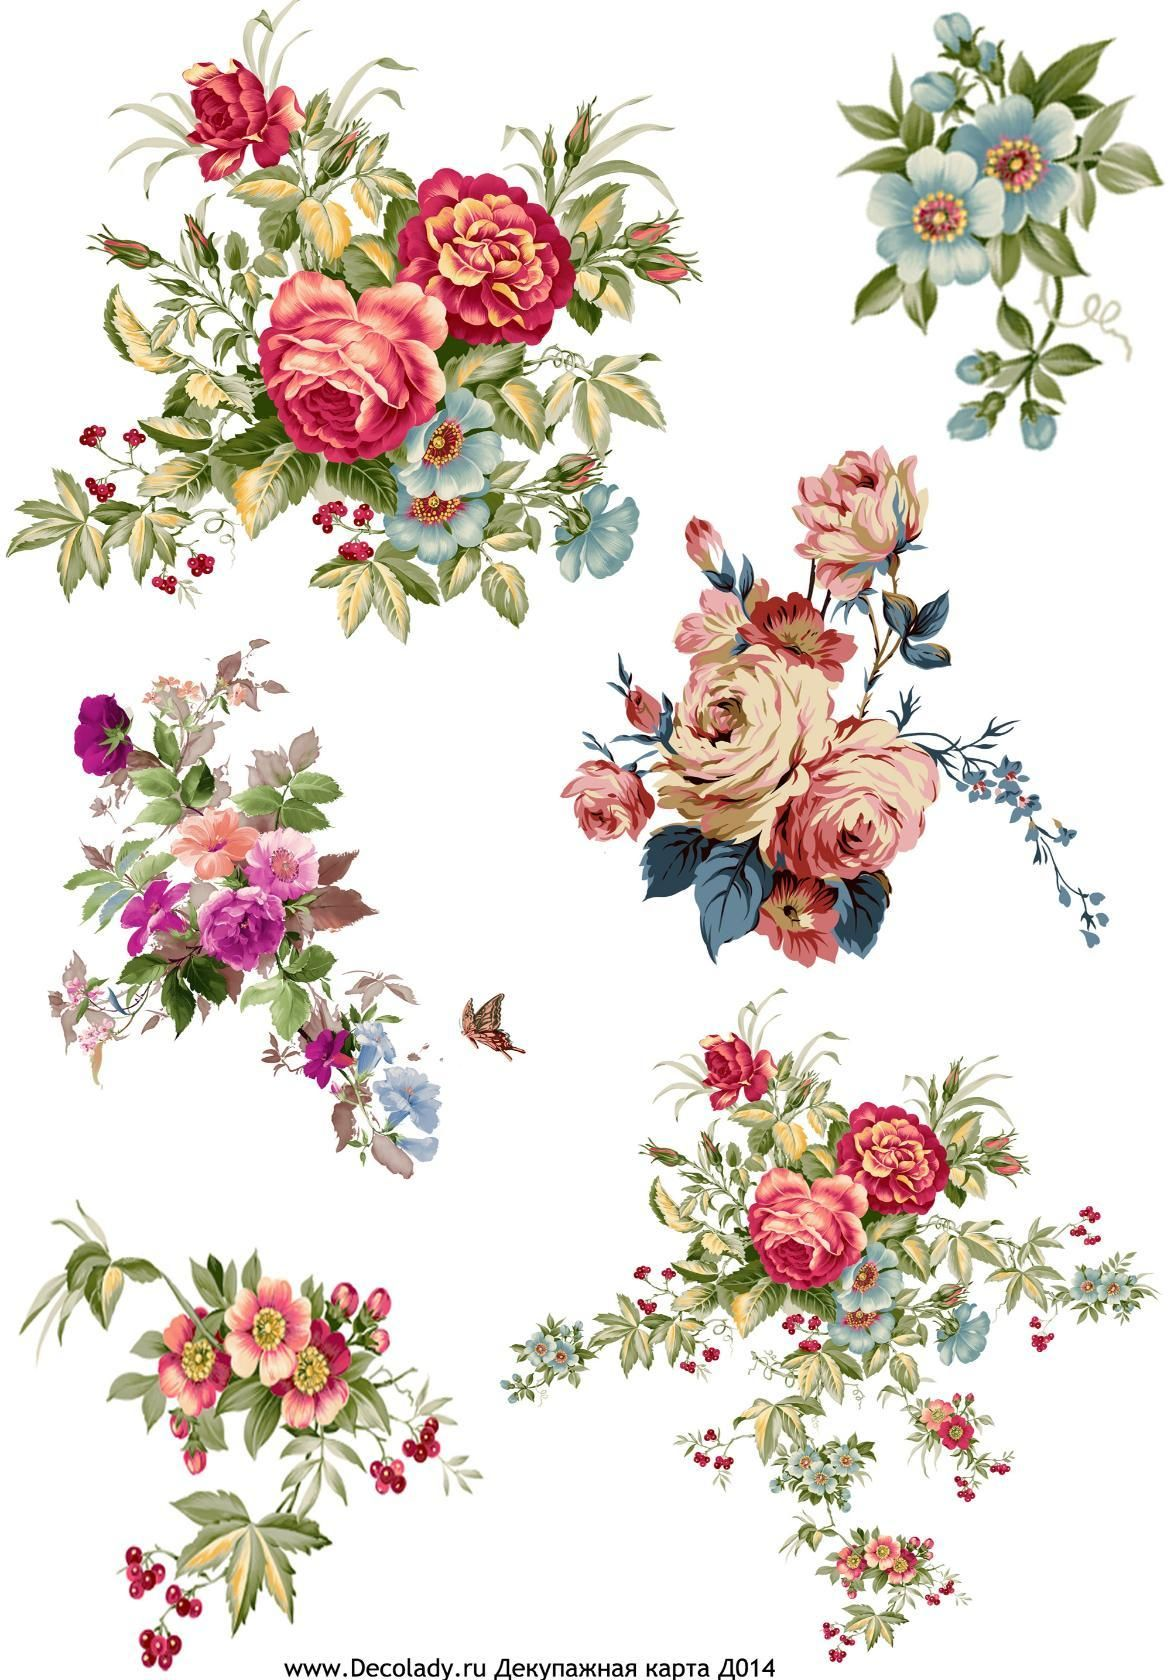 roses in 2018 pinterest decoupage flower and decoupage paper decoupage vintage mightylinksfo